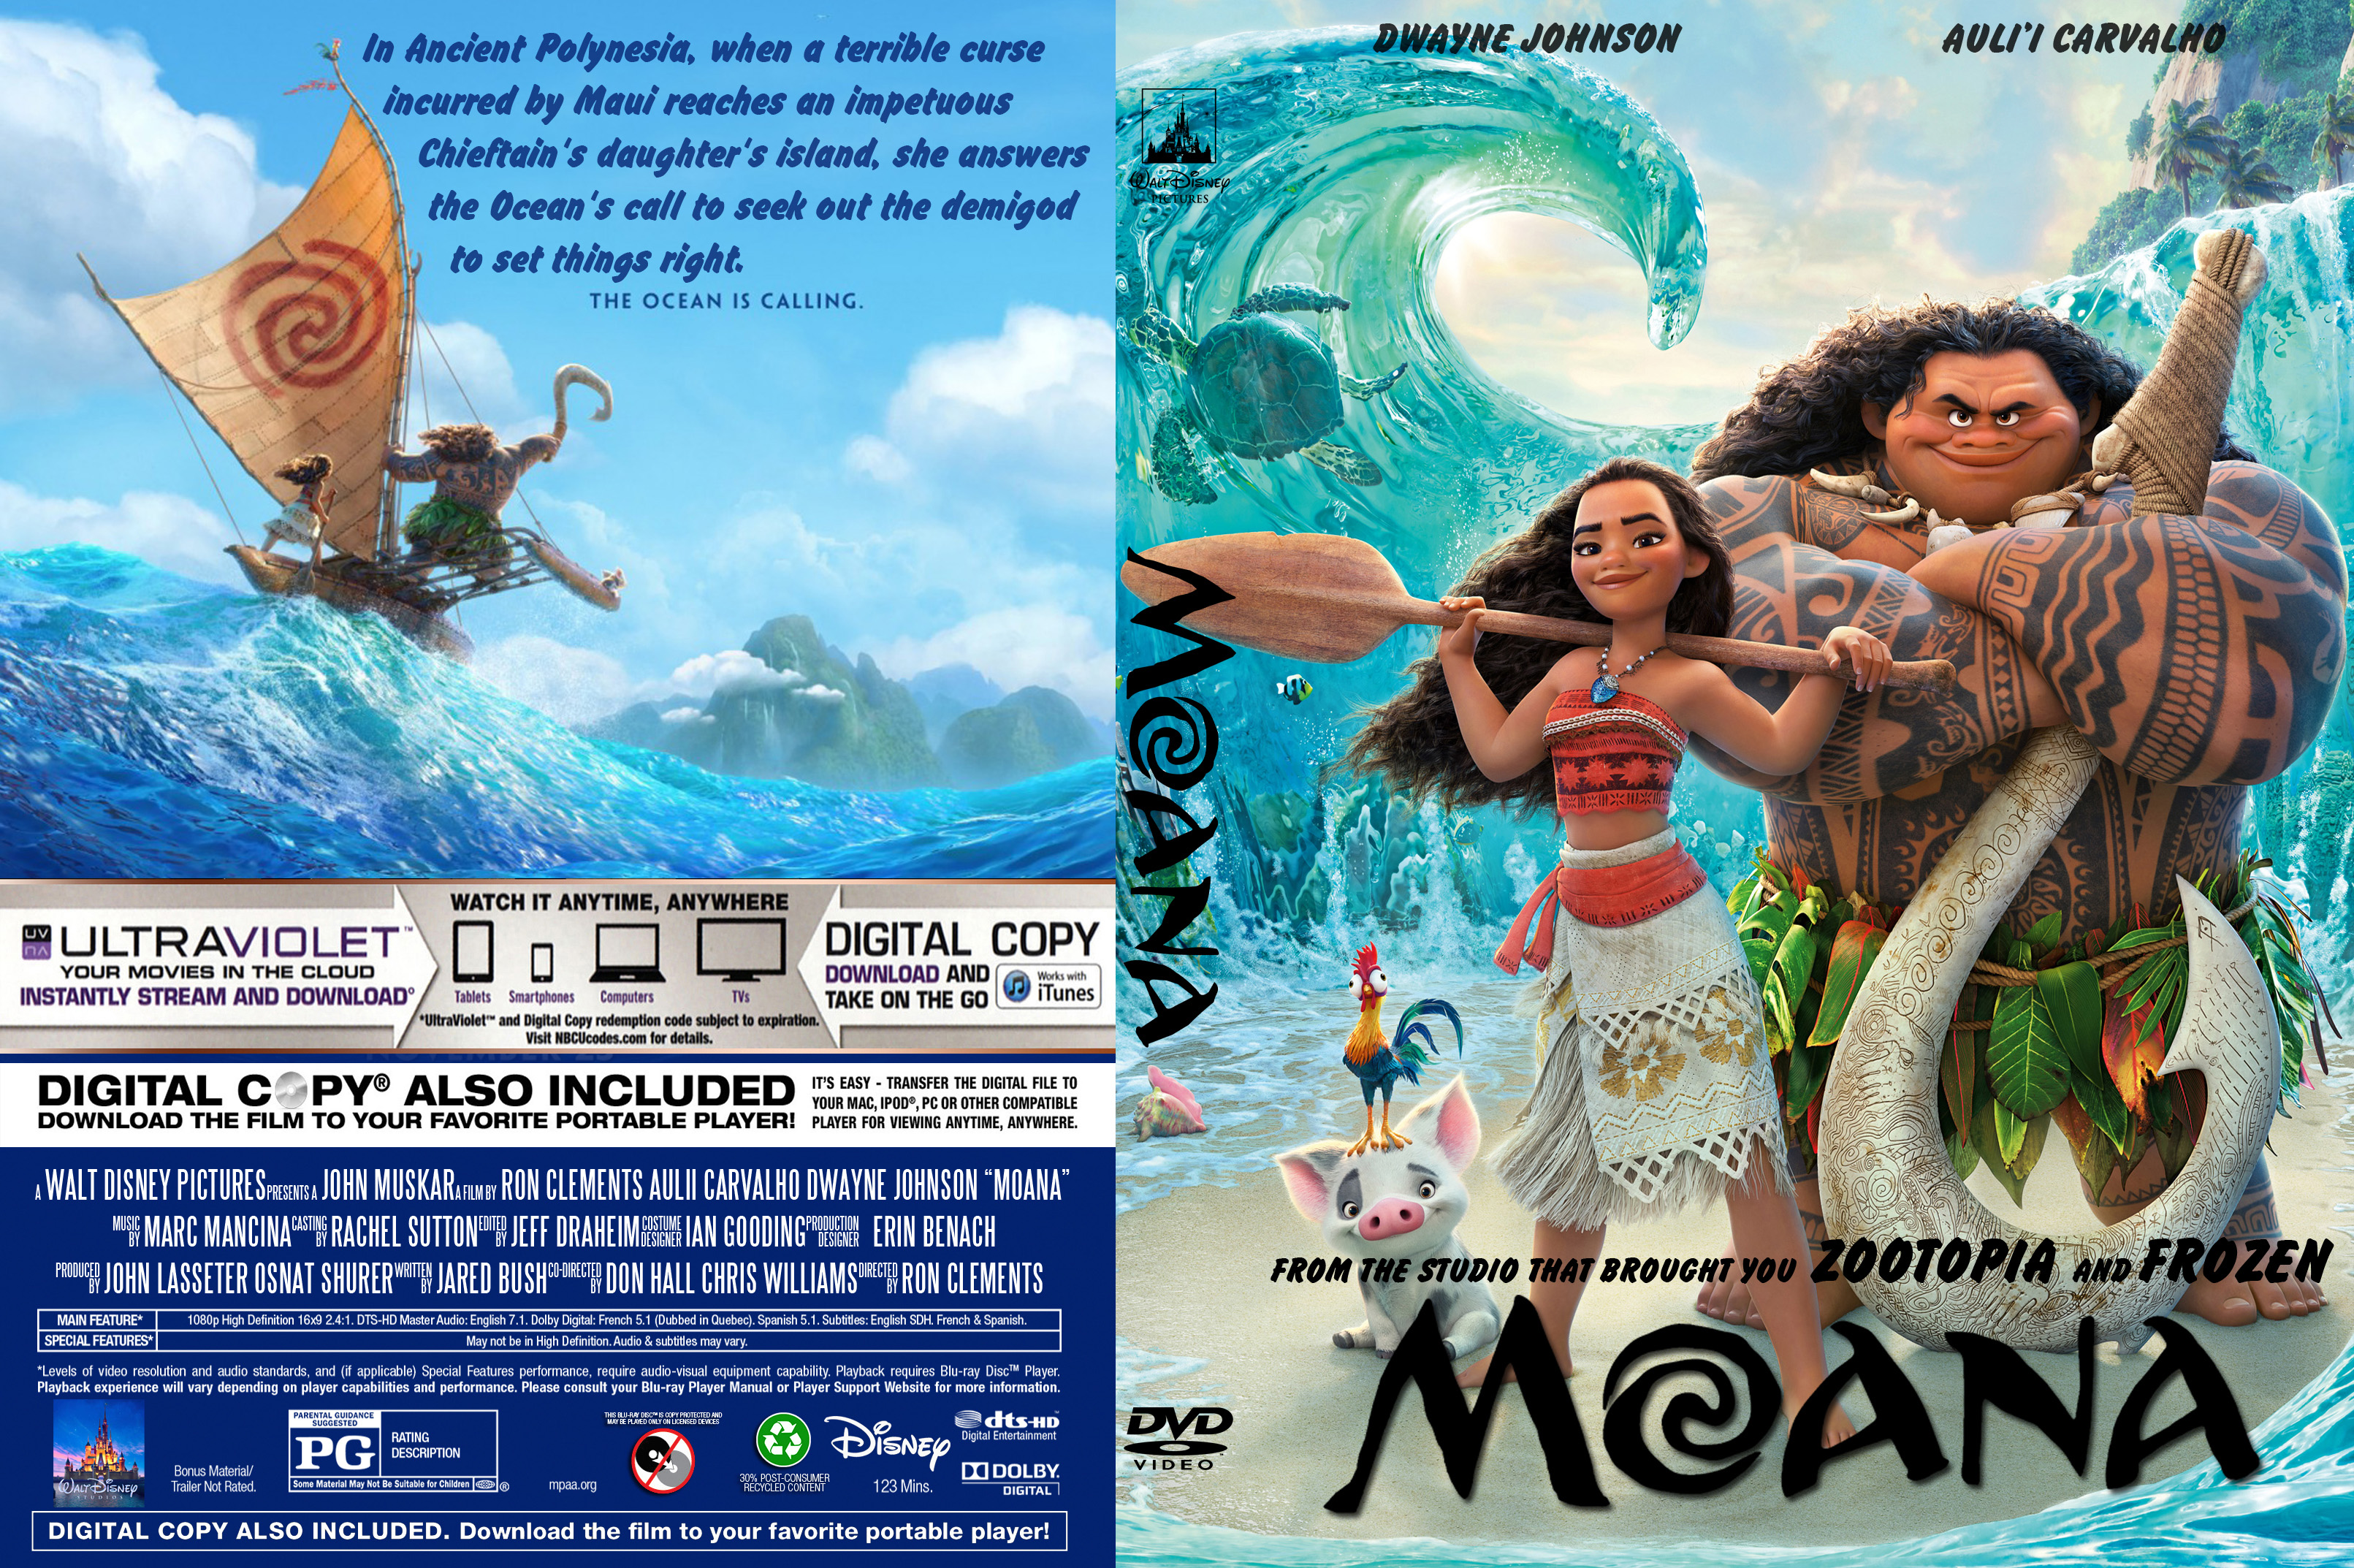 Moana 2017 Front Dvd Covers Cover Century Over 500 000 Album Art Covers For Free